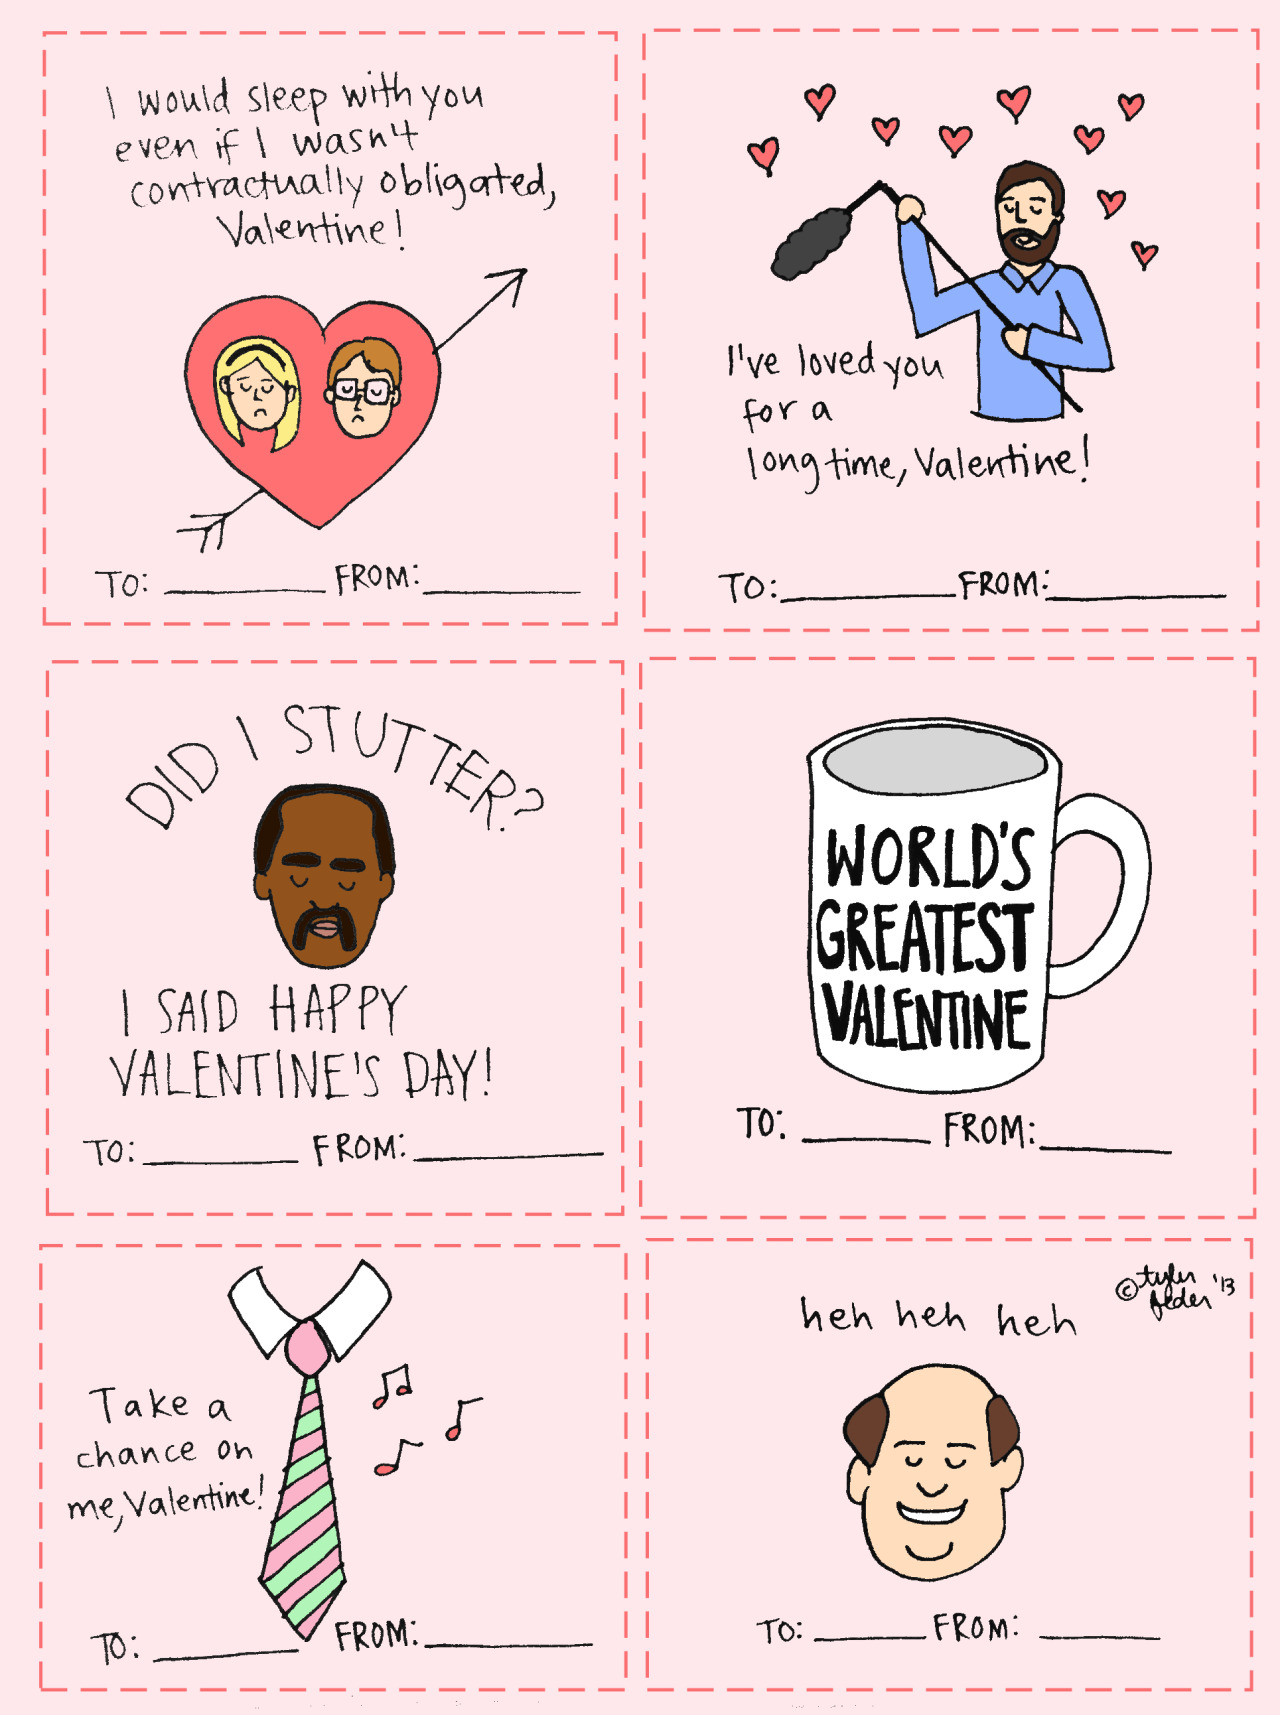 Some more The Office valentines. (by Tyler Feder)